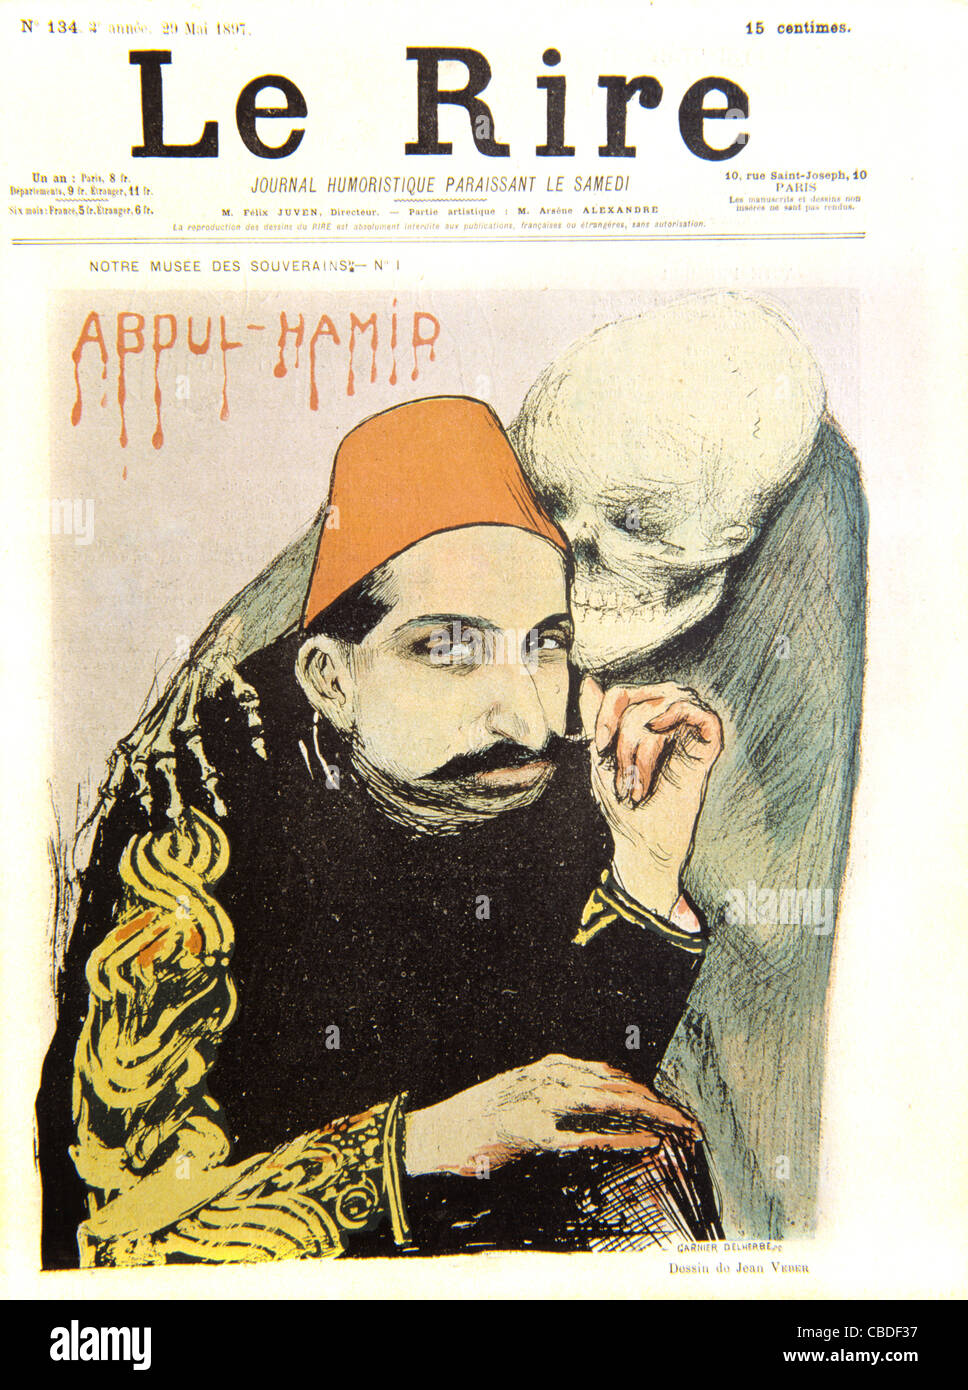 http://c7.alamy.com/comp/CBDF37/sultan-abdul-hamid-ii-ottoman-emperor-the-sick-man-of-europe-turkey-CBDF37.jpg